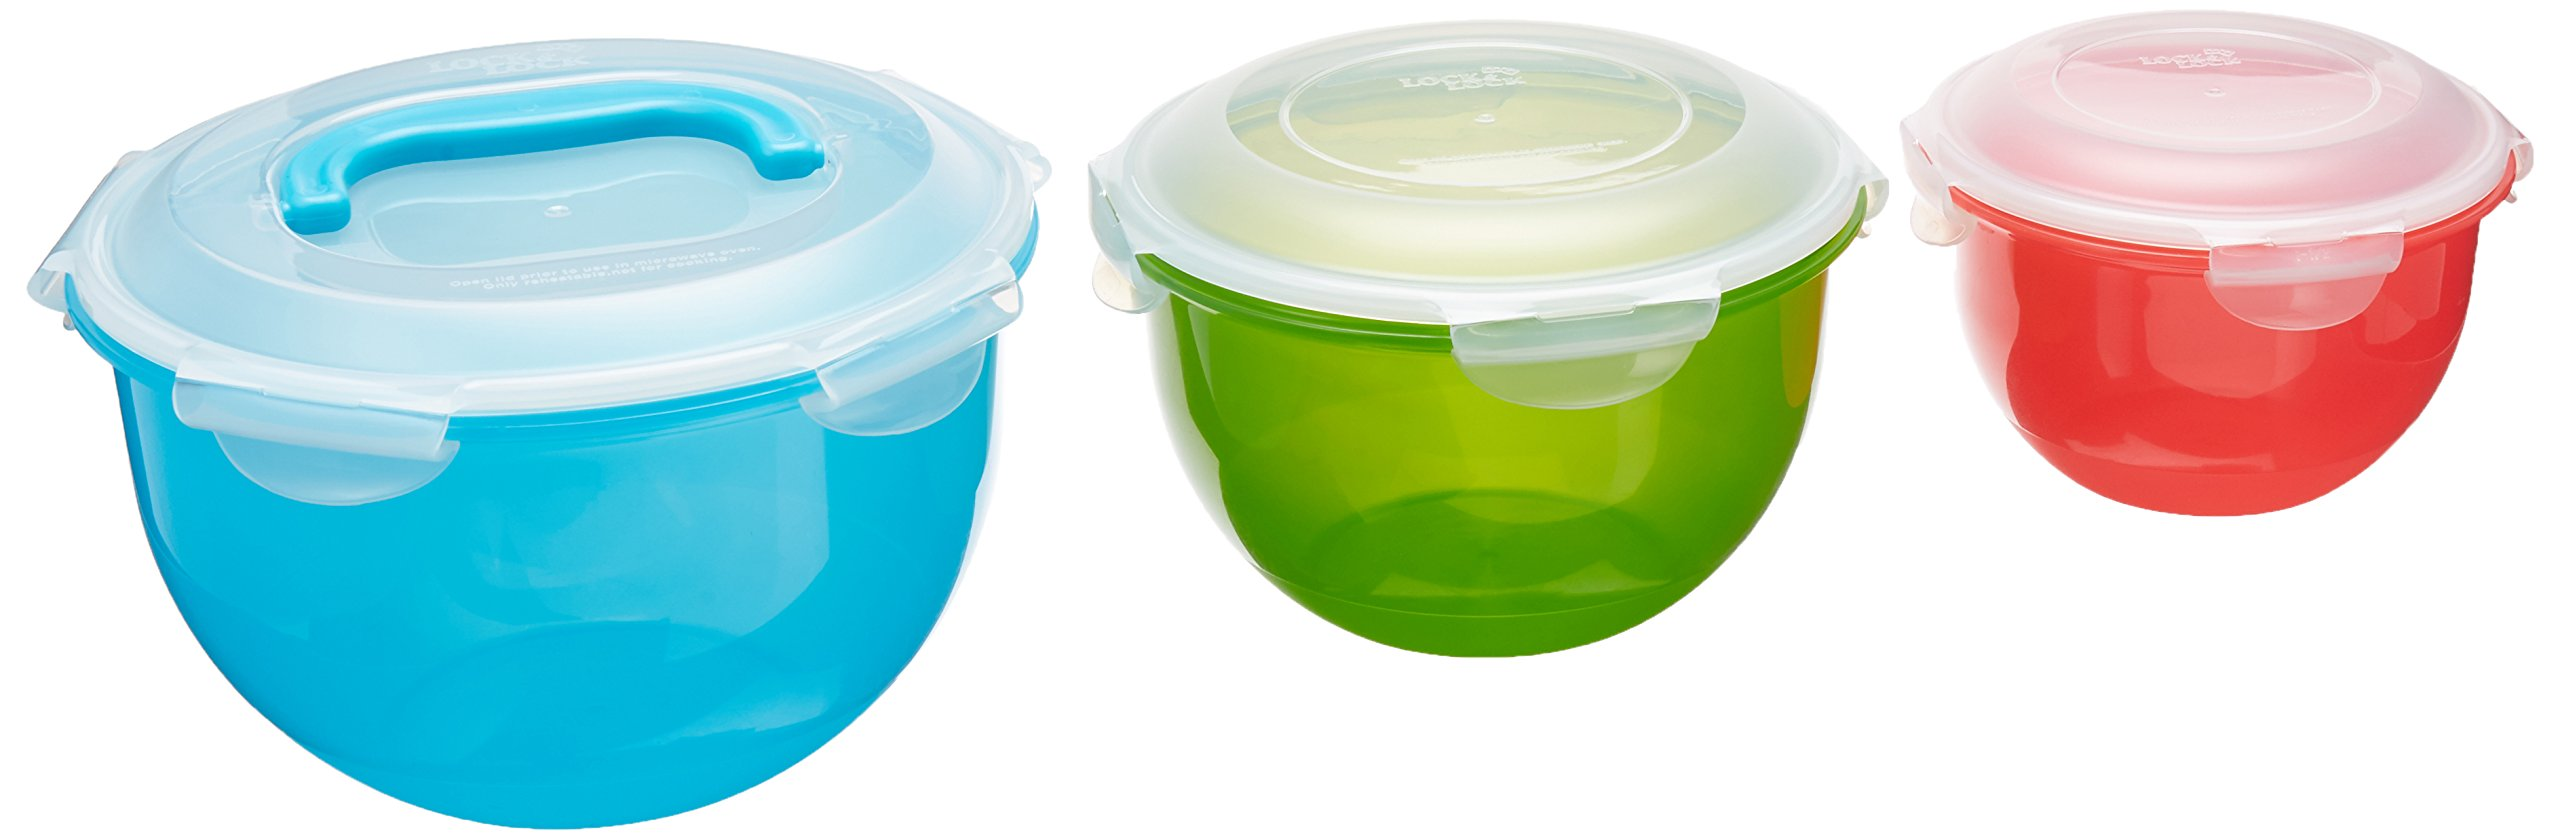 LOCK & LOCK 6 Piece Nesting Color Salad Bowl Set with Handle, Blue/Green/Red